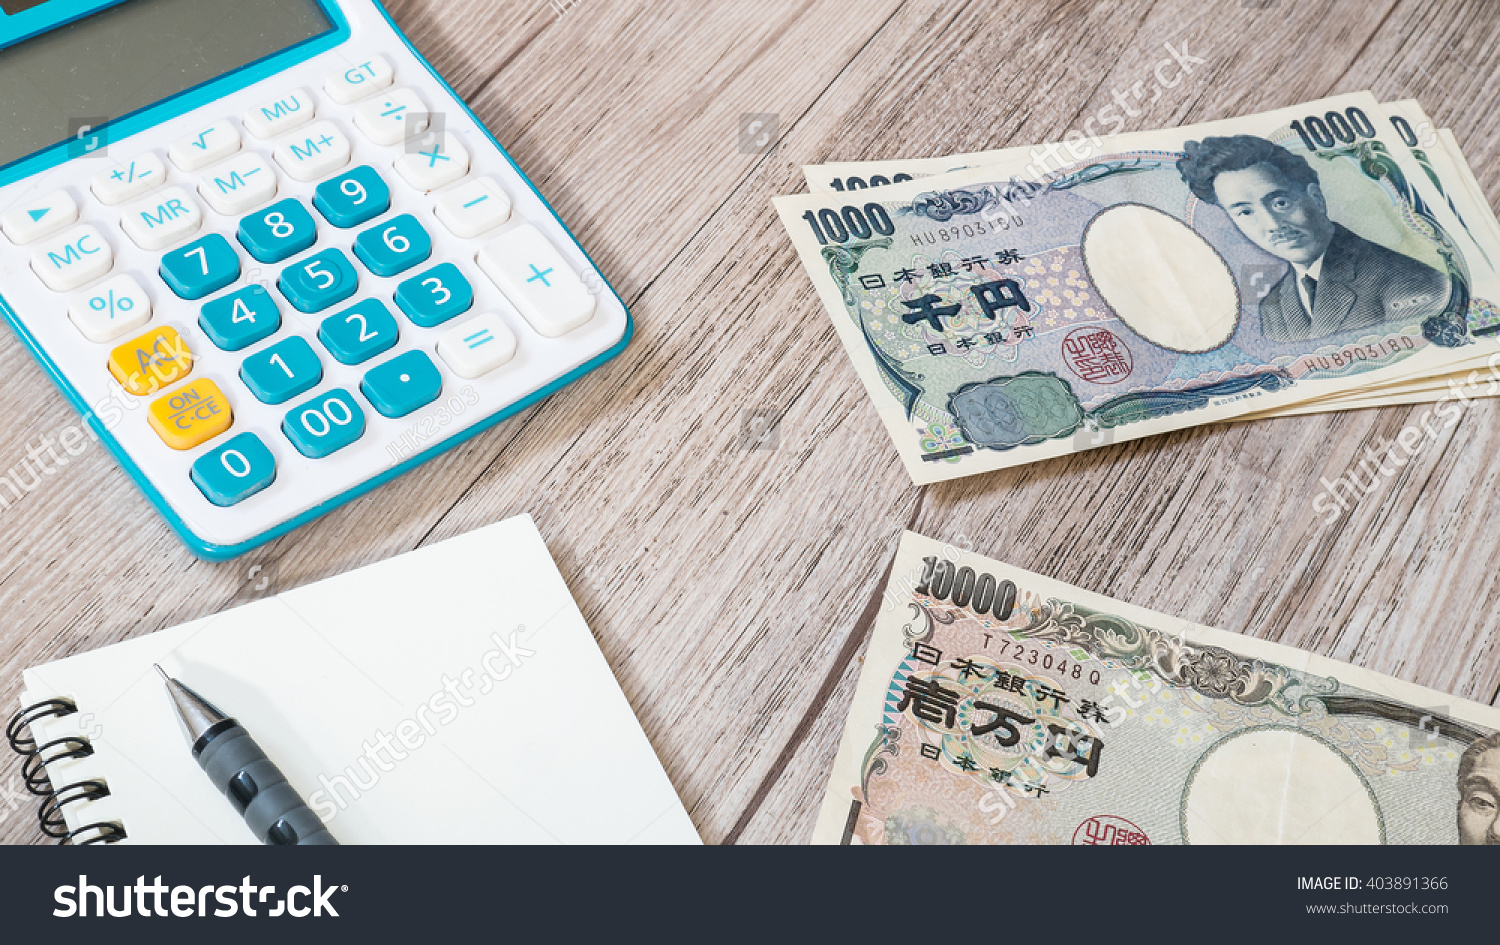 Japan money japanese yen currency and calculator notebook pencil on wooden background